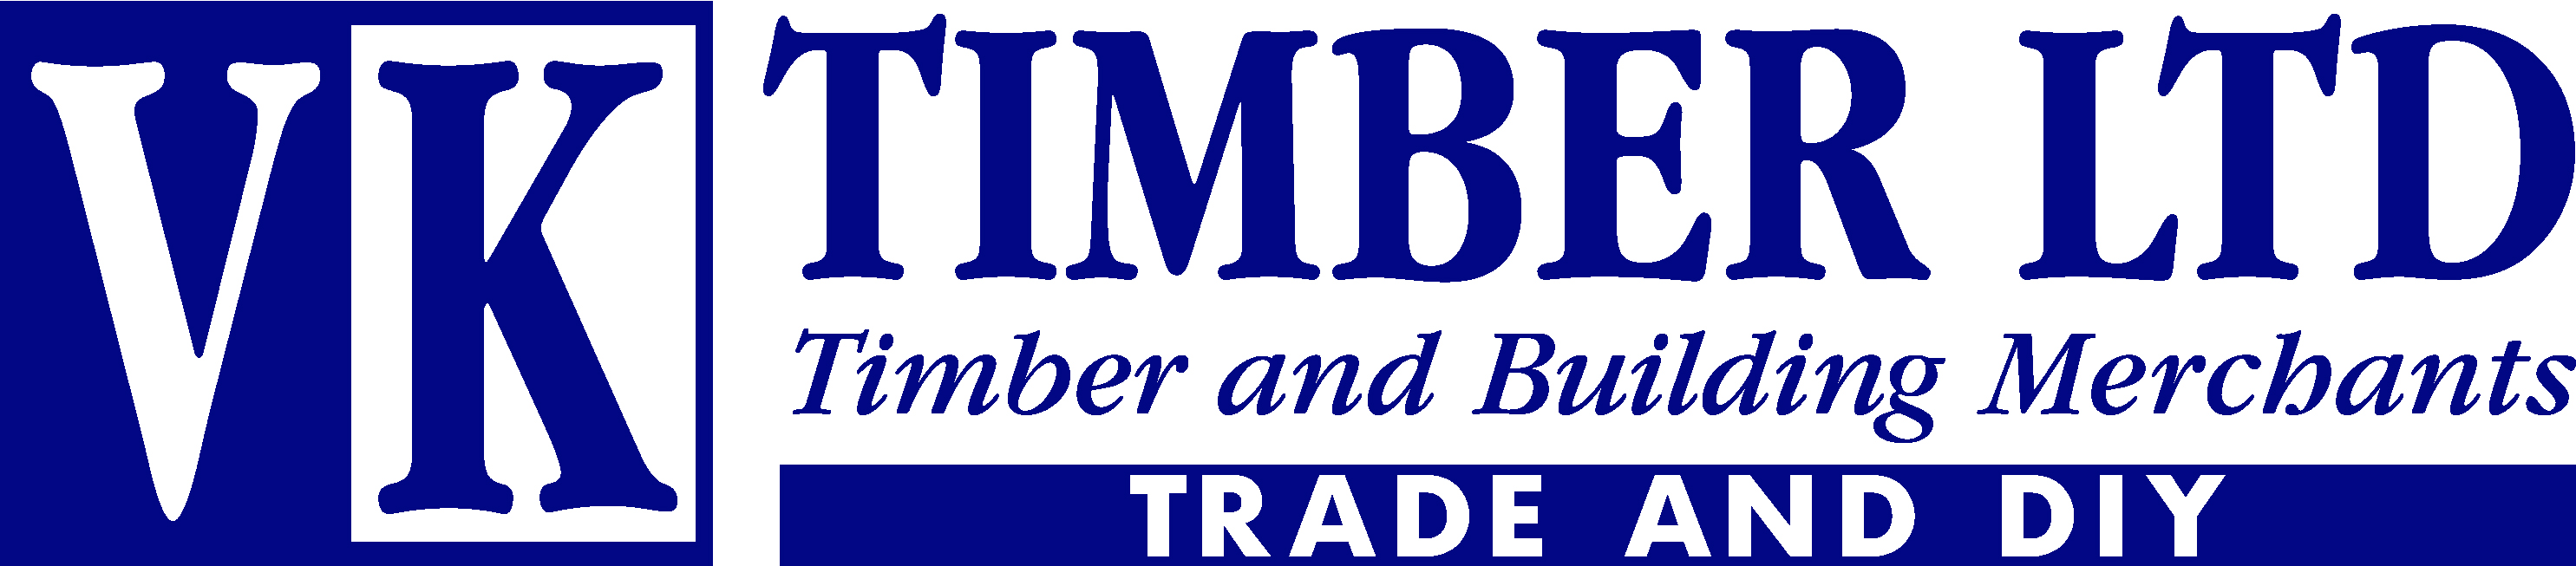 VK Timber and Building Merchants